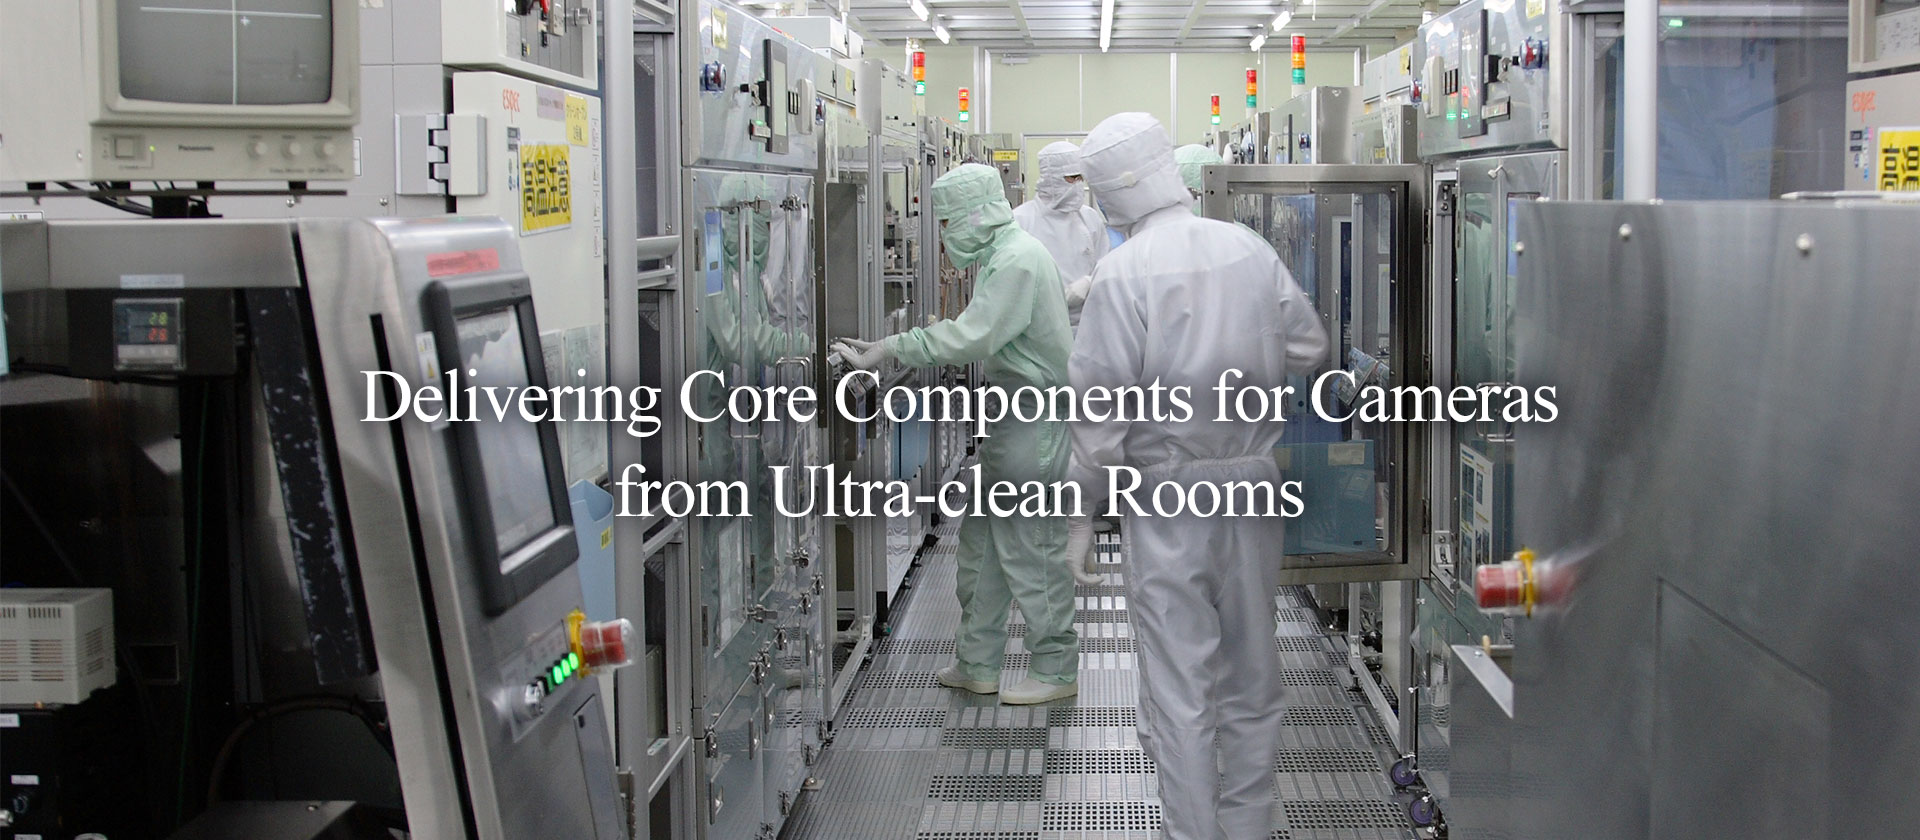 Delivering Core Components for Cameras from Ultra-clean Rooms